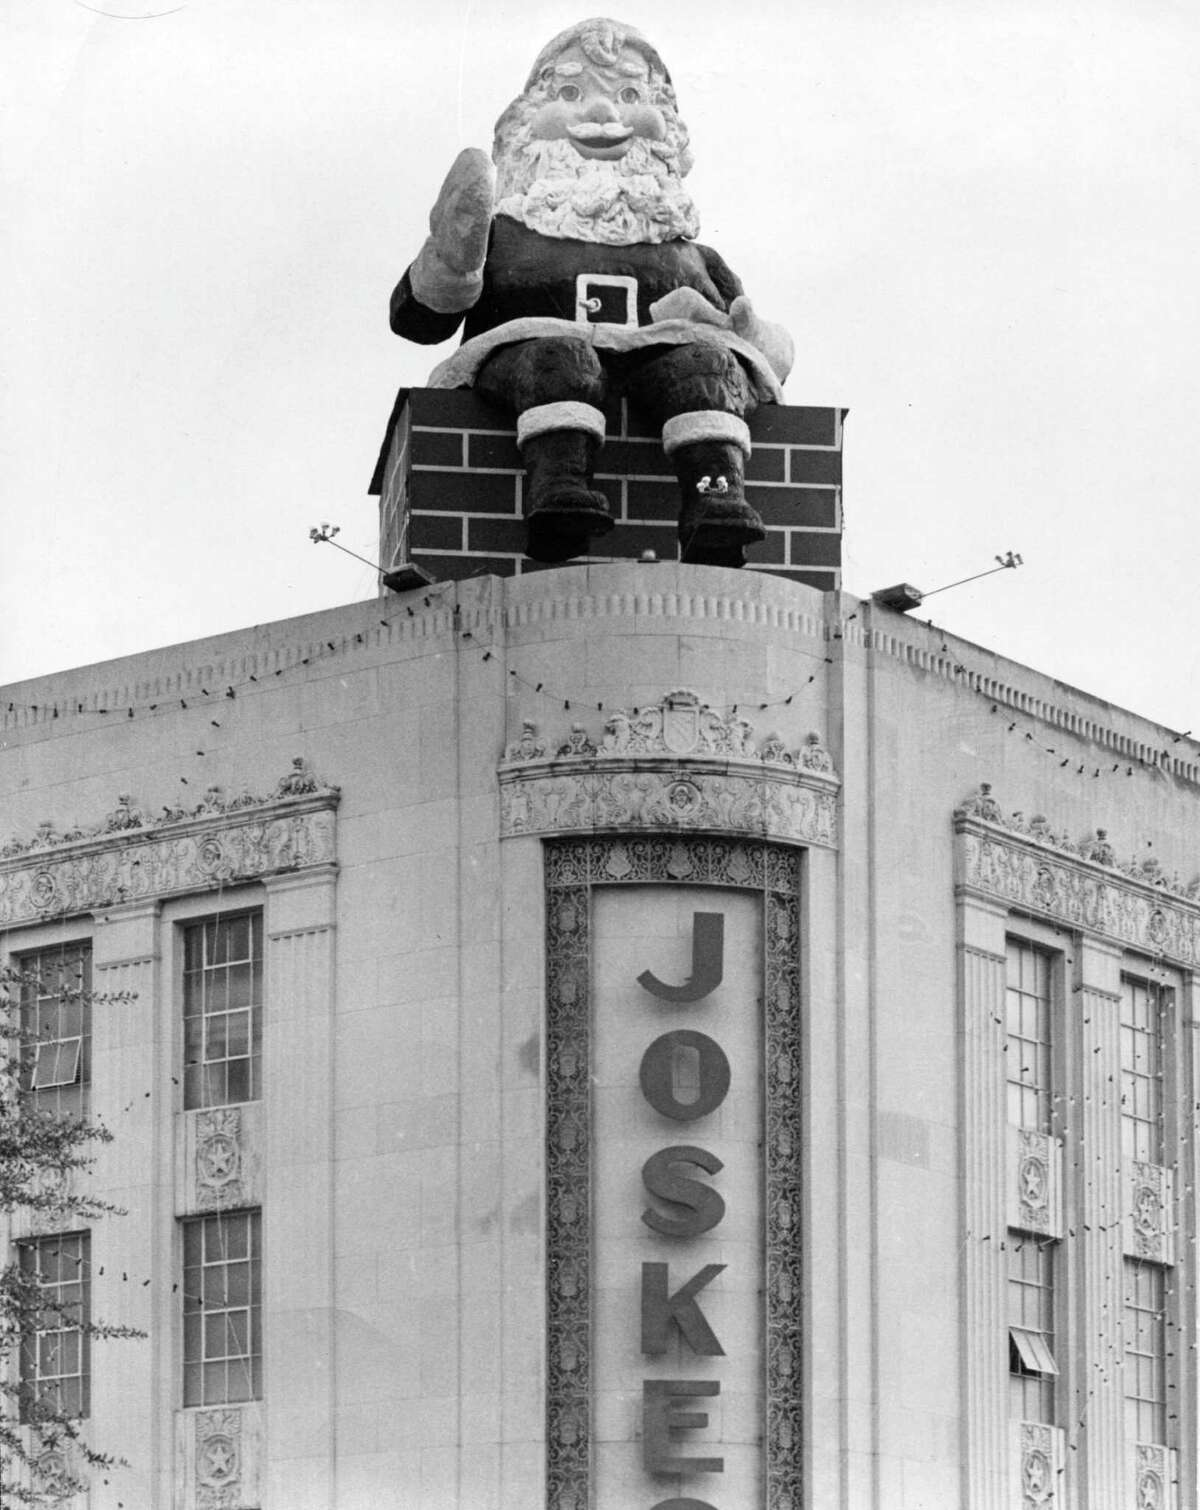 """This decoration atop the downtown Joske's store was promoted from 1958 to 1968 as the """"world's largest Santa."""""""